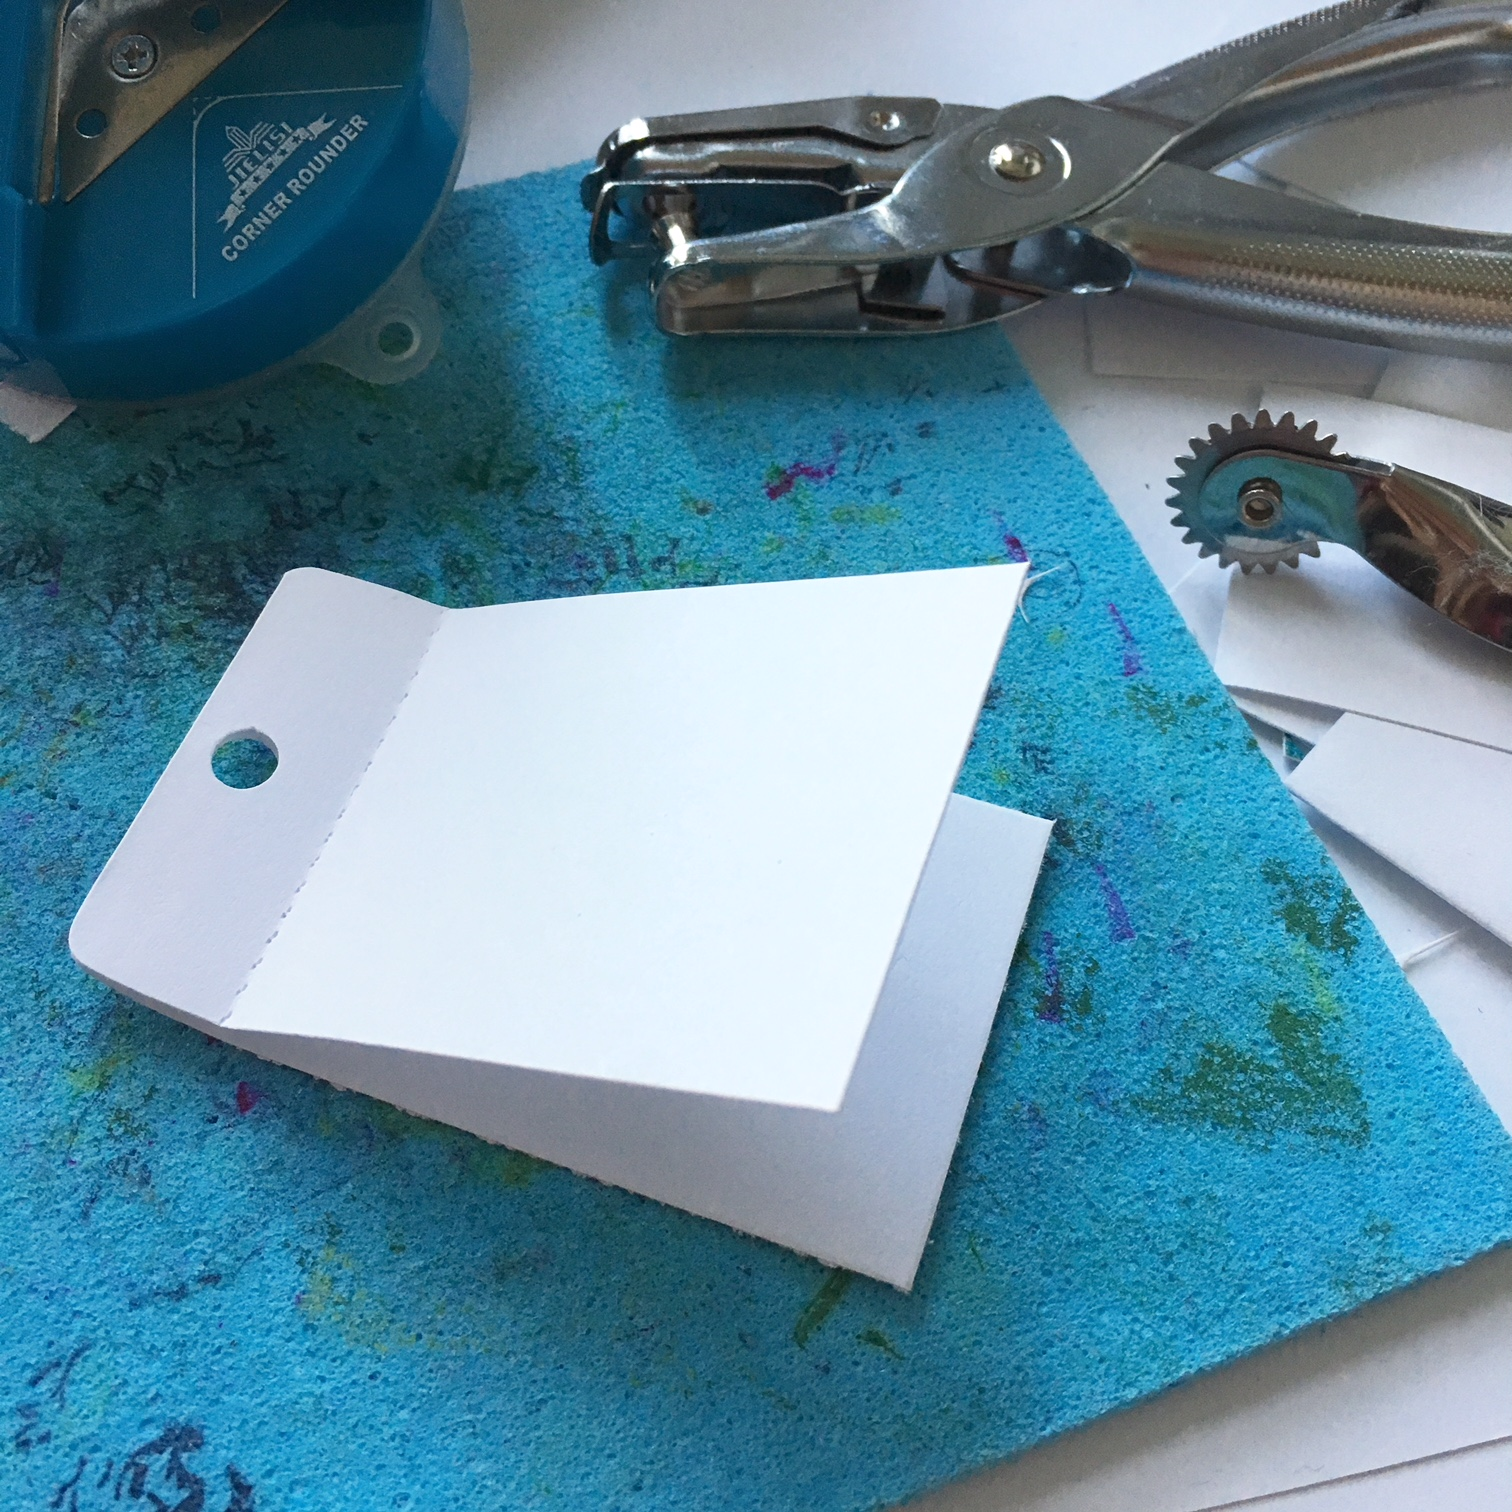 folded rectangular piece of paper whith a punch hole, punch hole maker, perforation knife and edge punch